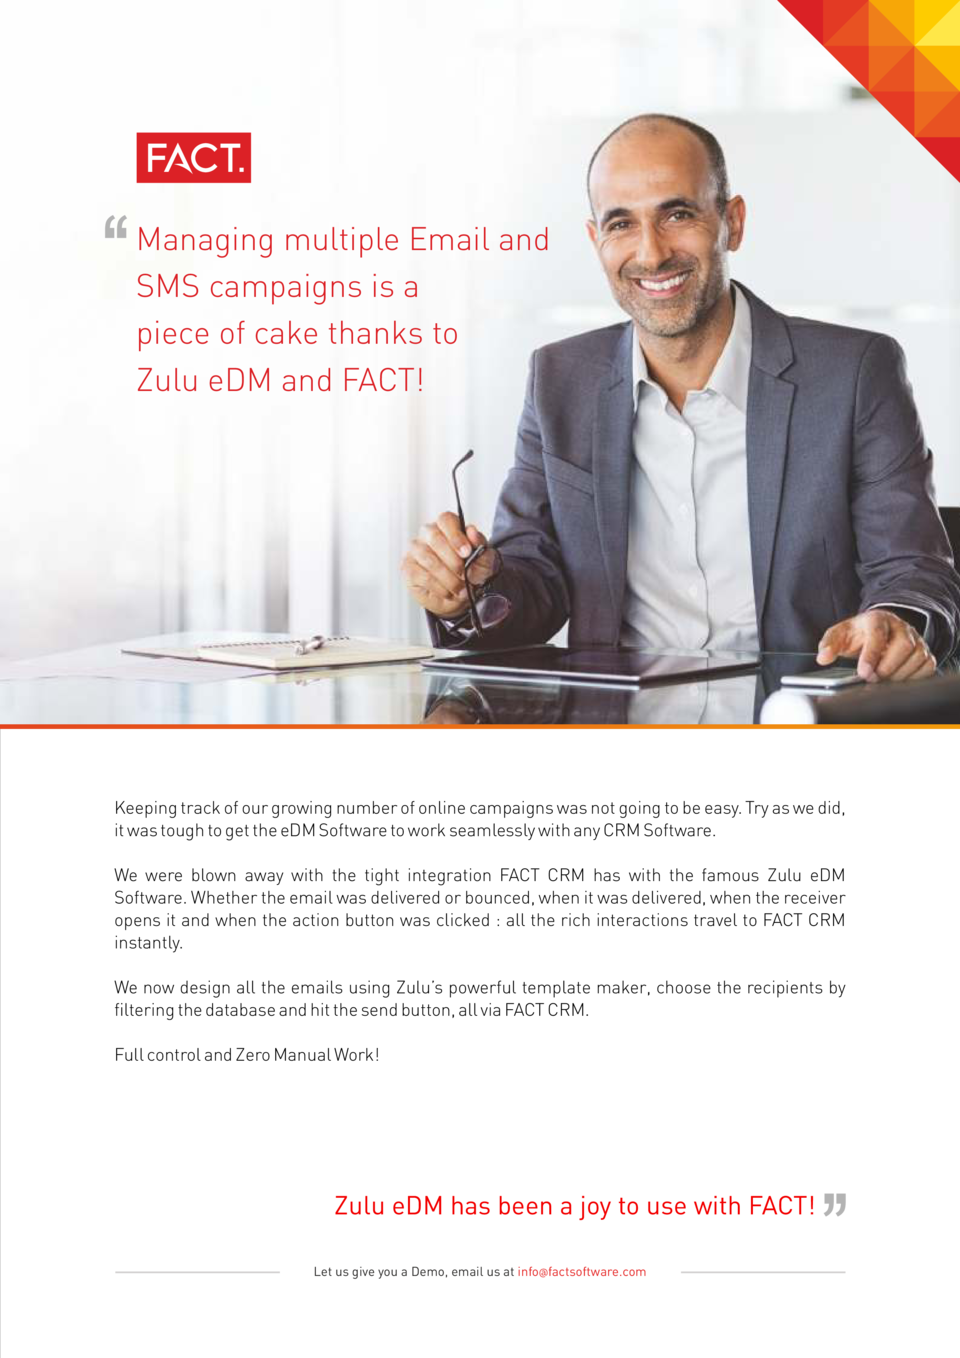 Managing multiple Email and SMS campaigns is a piece of cake thanks to Zulu eDM and FACT   Keeping track of our growing nu...